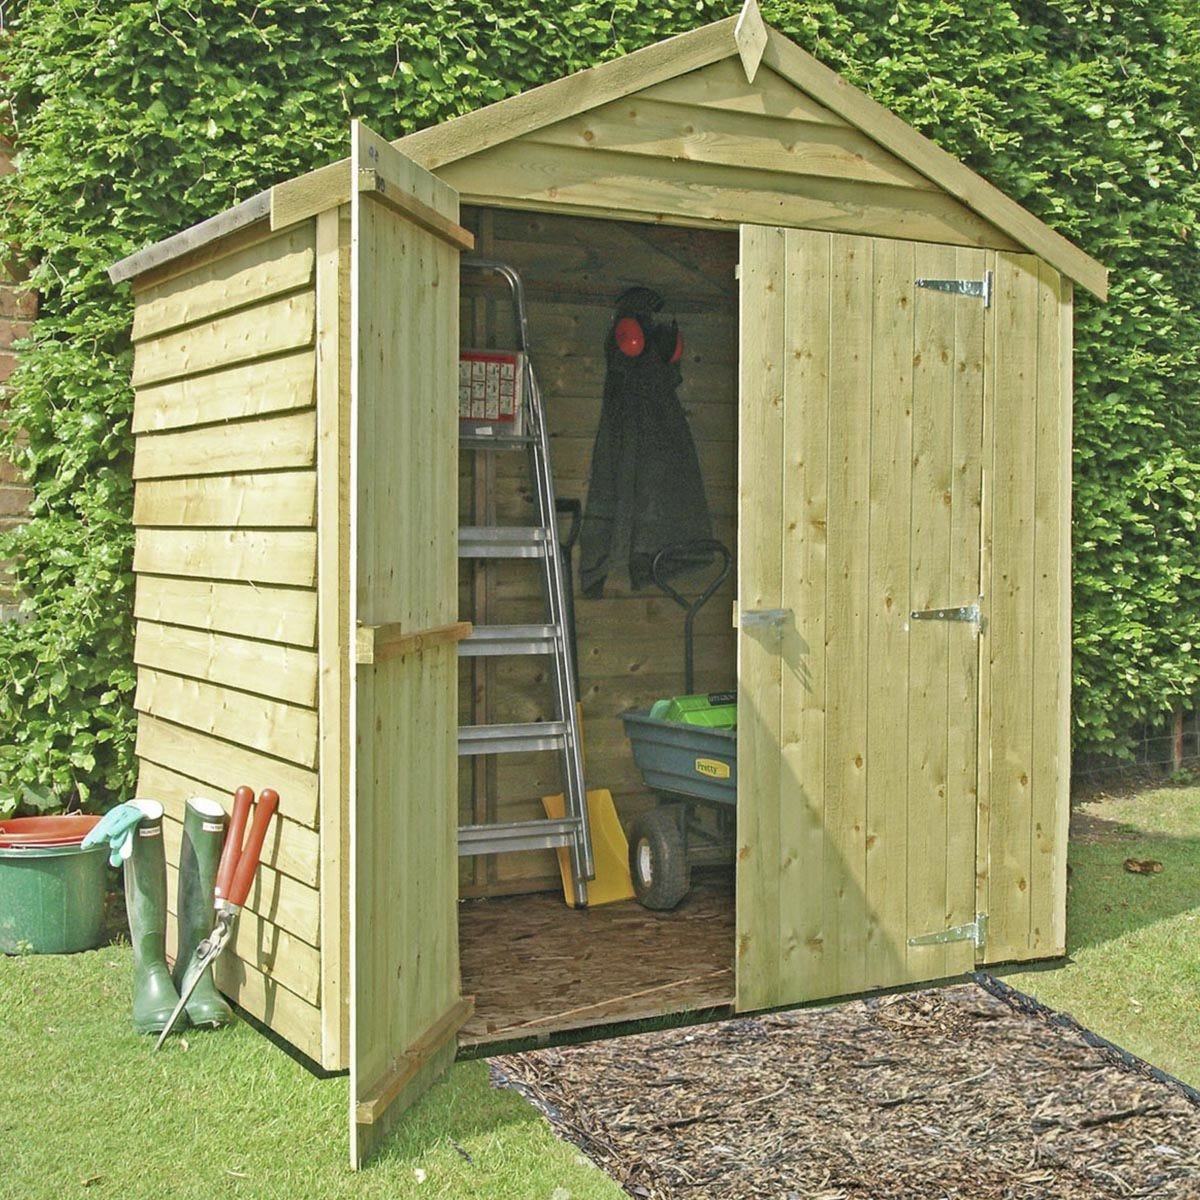 Shire Pressure-Treated Overlap Shed with Double Doors - 4 x 6